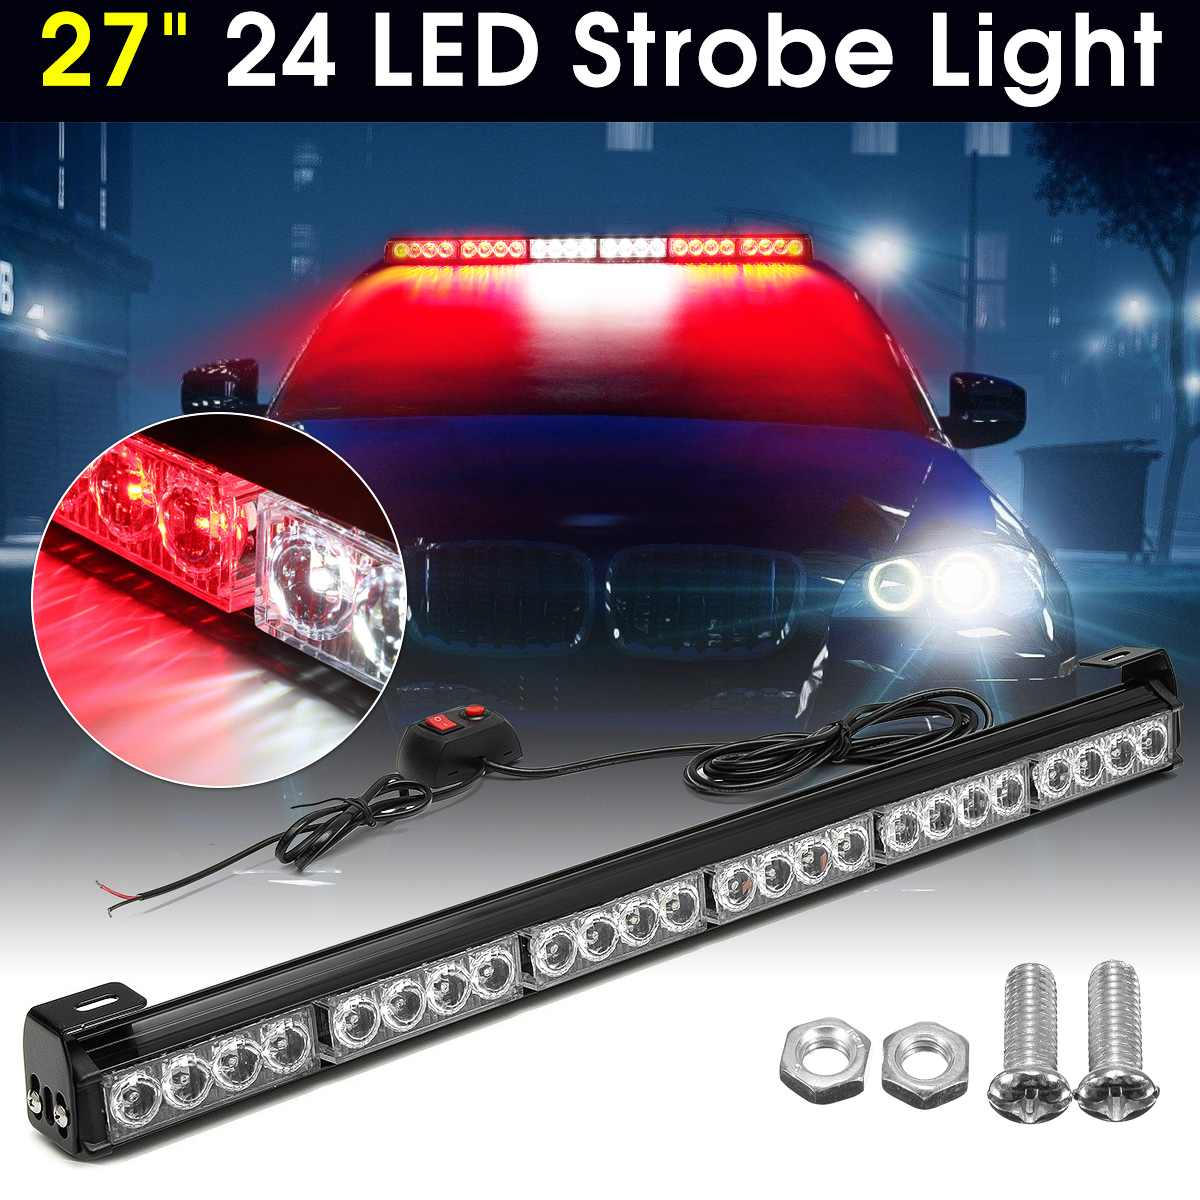 1PCS 27inch 24 LED White Red Emergency Traffic Hazard Flash Warning Light Bar Traffic Strobe Flashing Light Car Light Styling